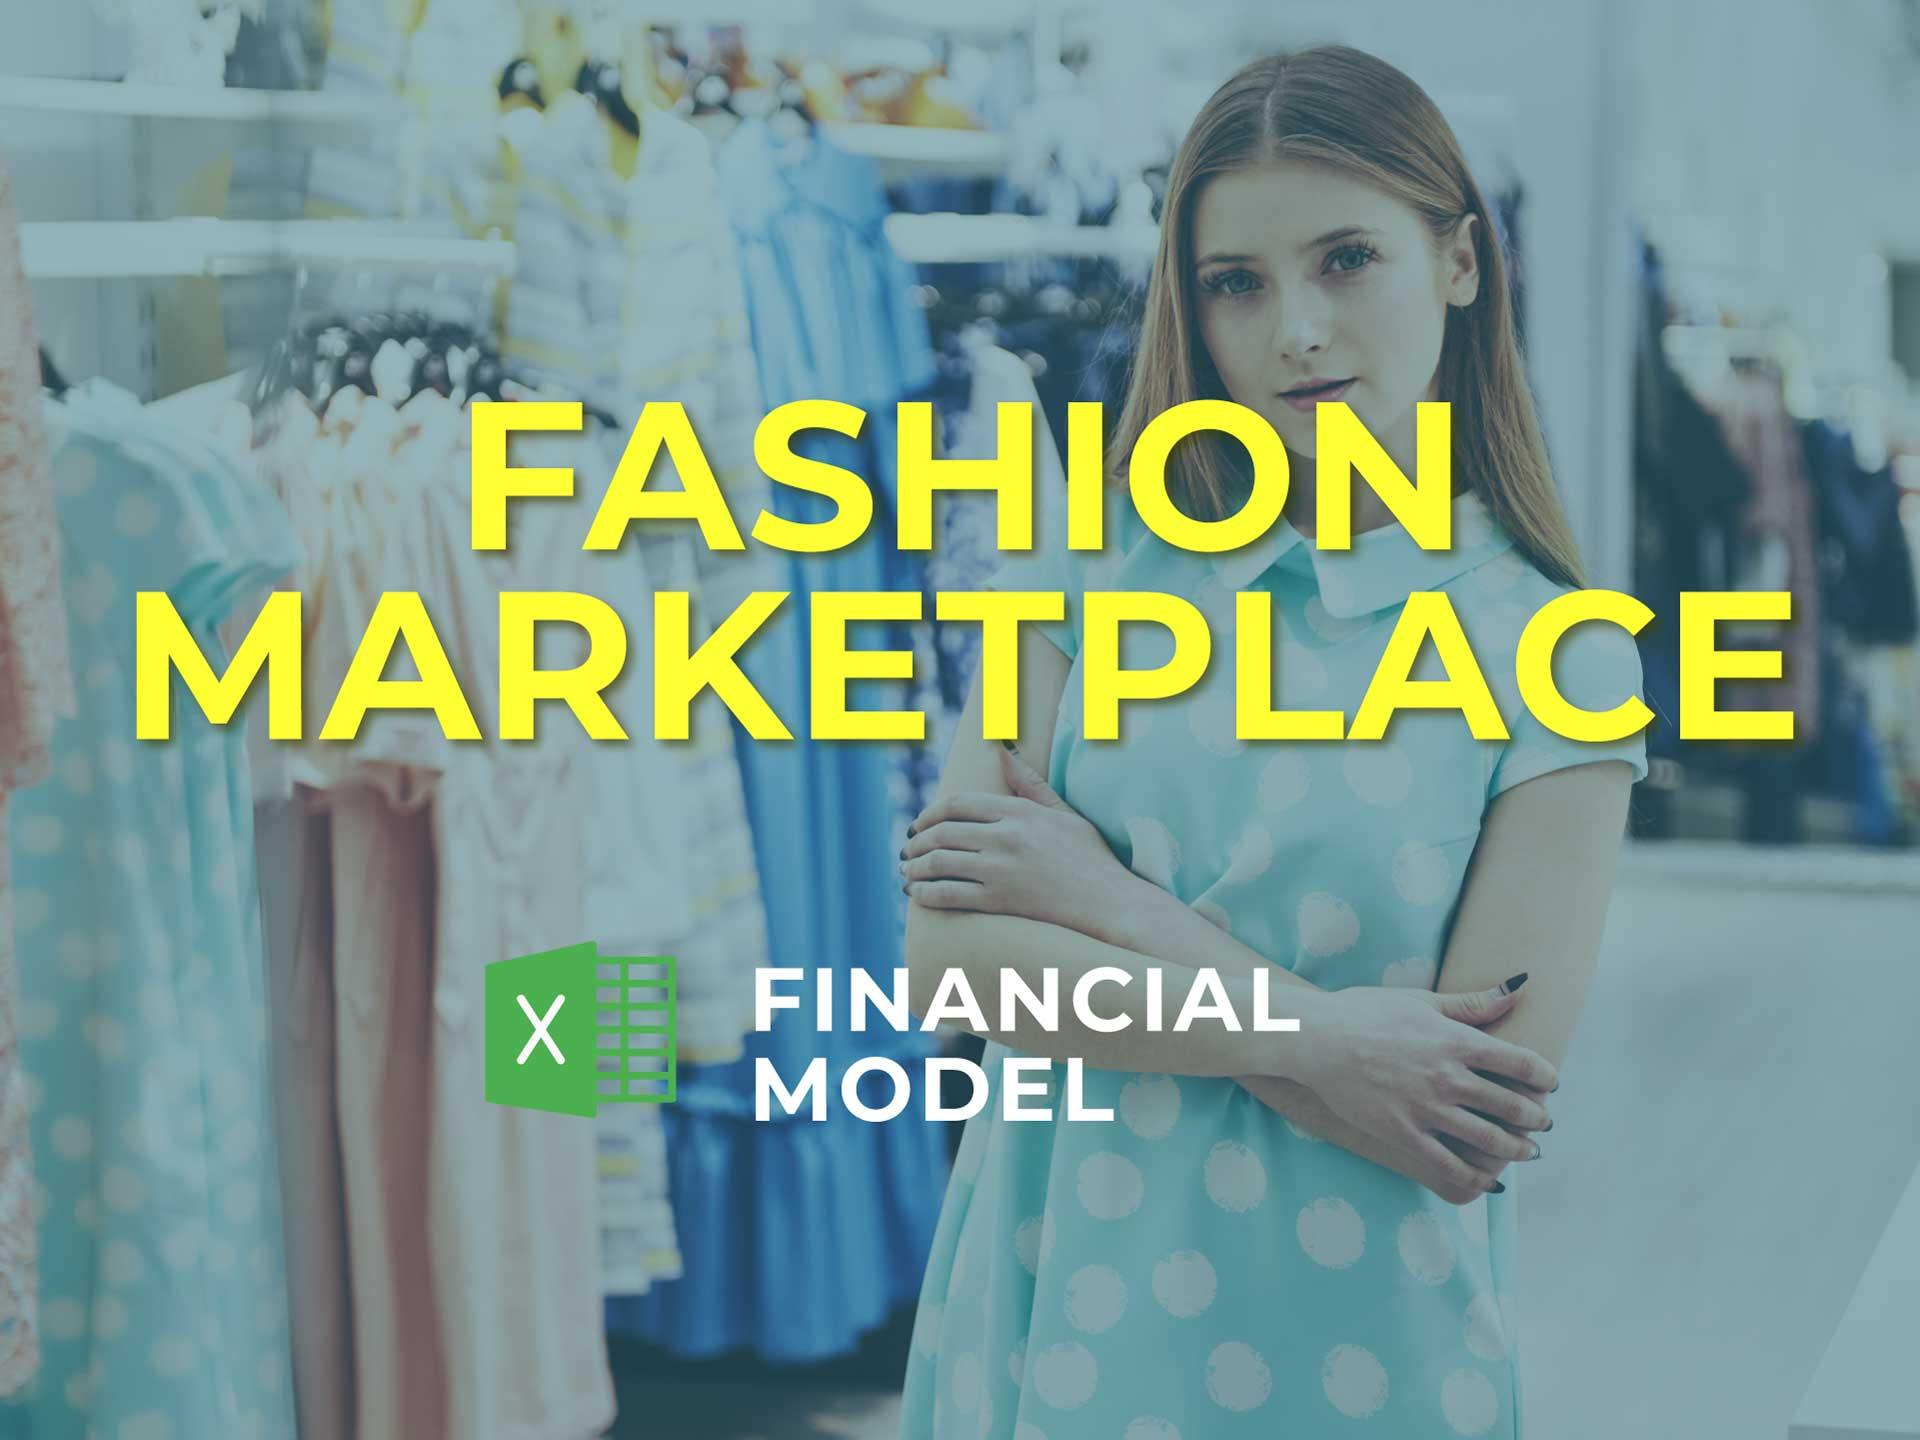 Fashion Marketplace Financial Model Excel Template - Templarket -  Business Templates Marketplace